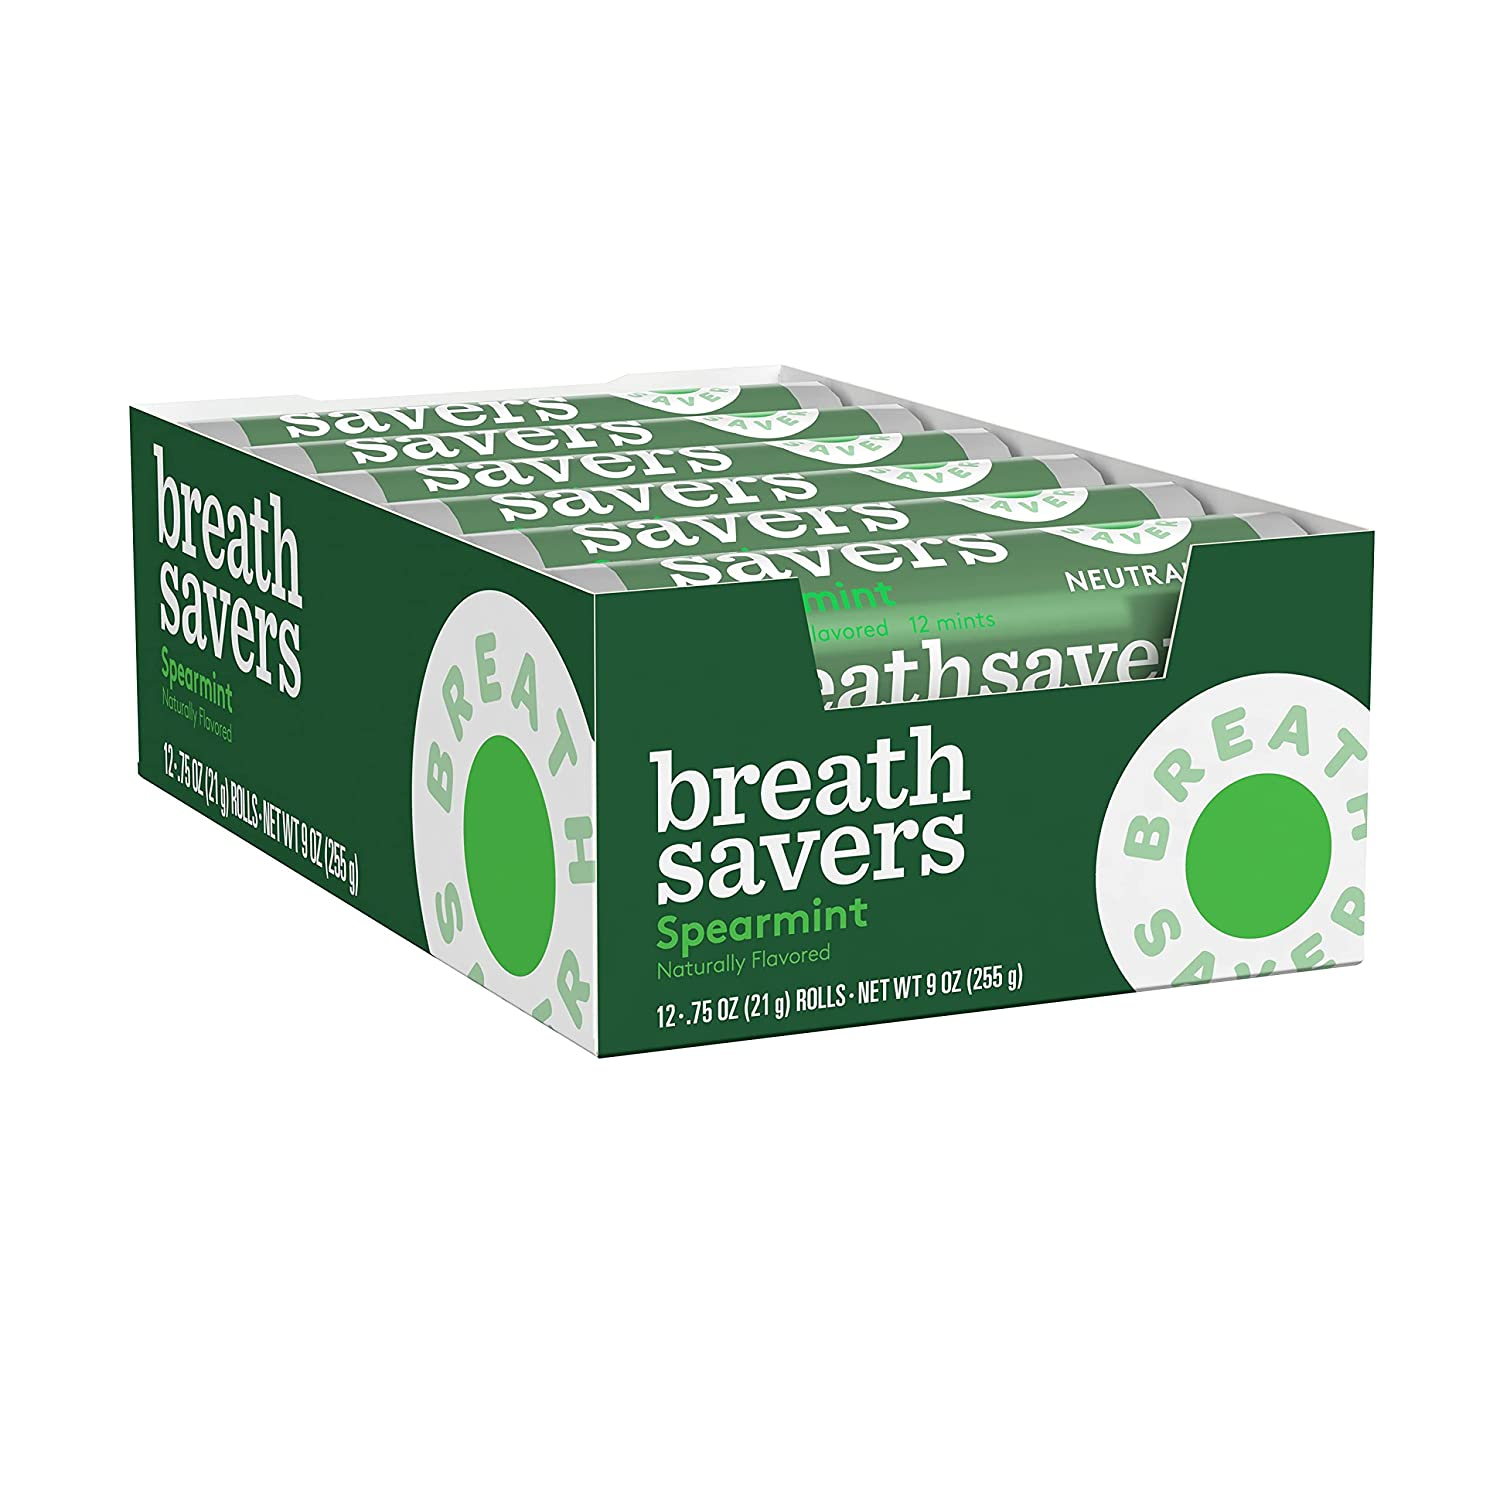 BREATH SAVERS Spearmint Clearance SALE! Limited time! Industry No. 1 Flavored Sugar M Bulk Breath Free Mints